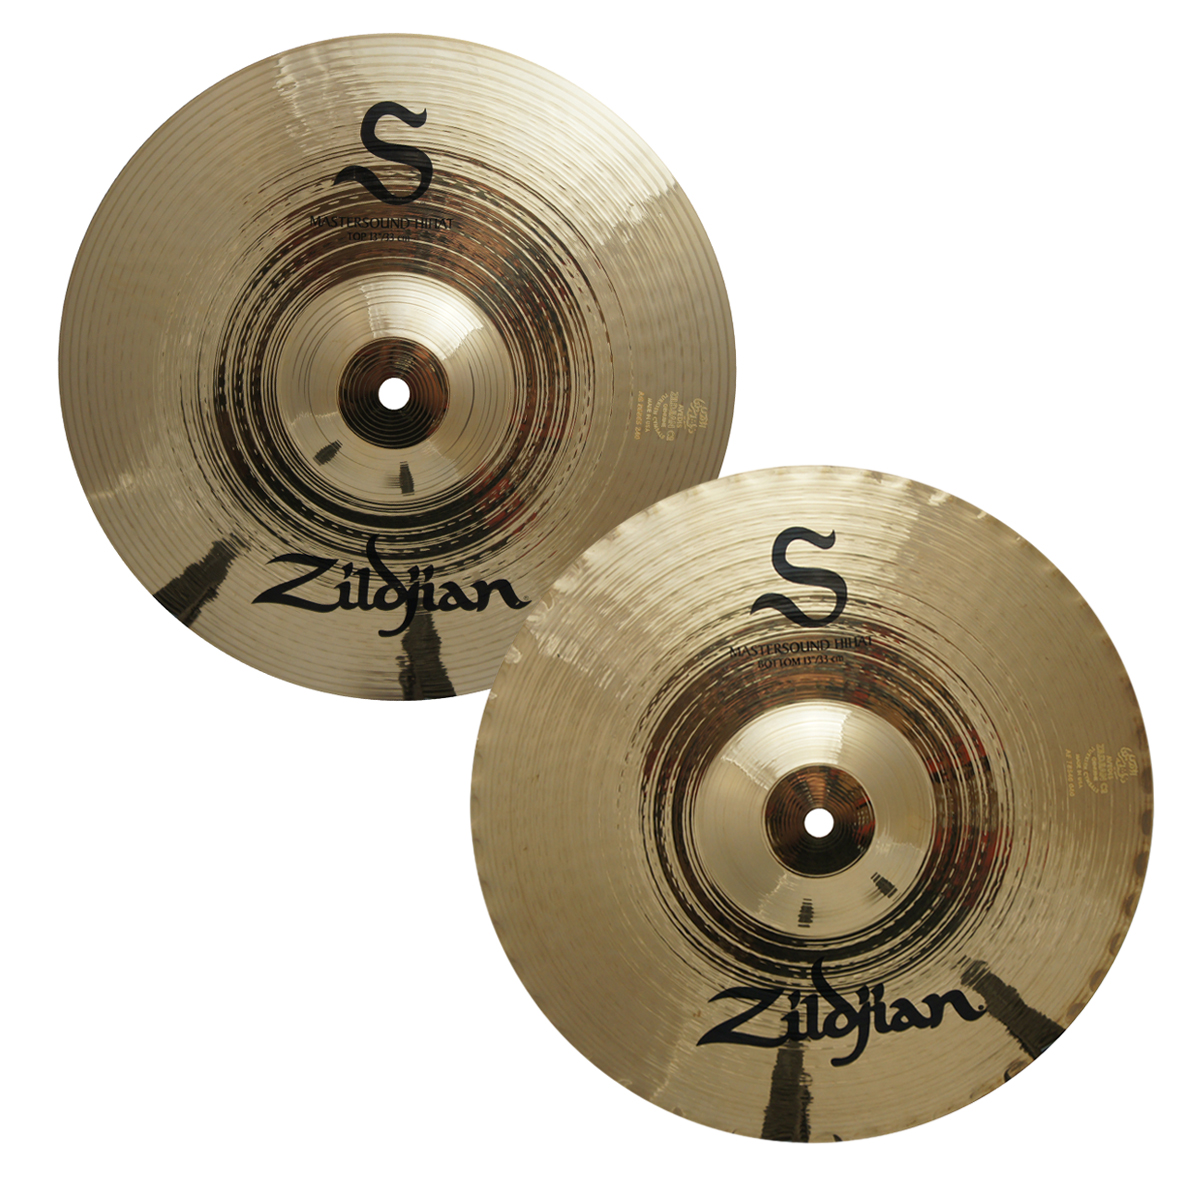 "Zildjian S13MPR 13"" S Family Mastersound Hi-Hat Cymbal Pair w/ Balanced Frequency Response - Brilliant Finish"